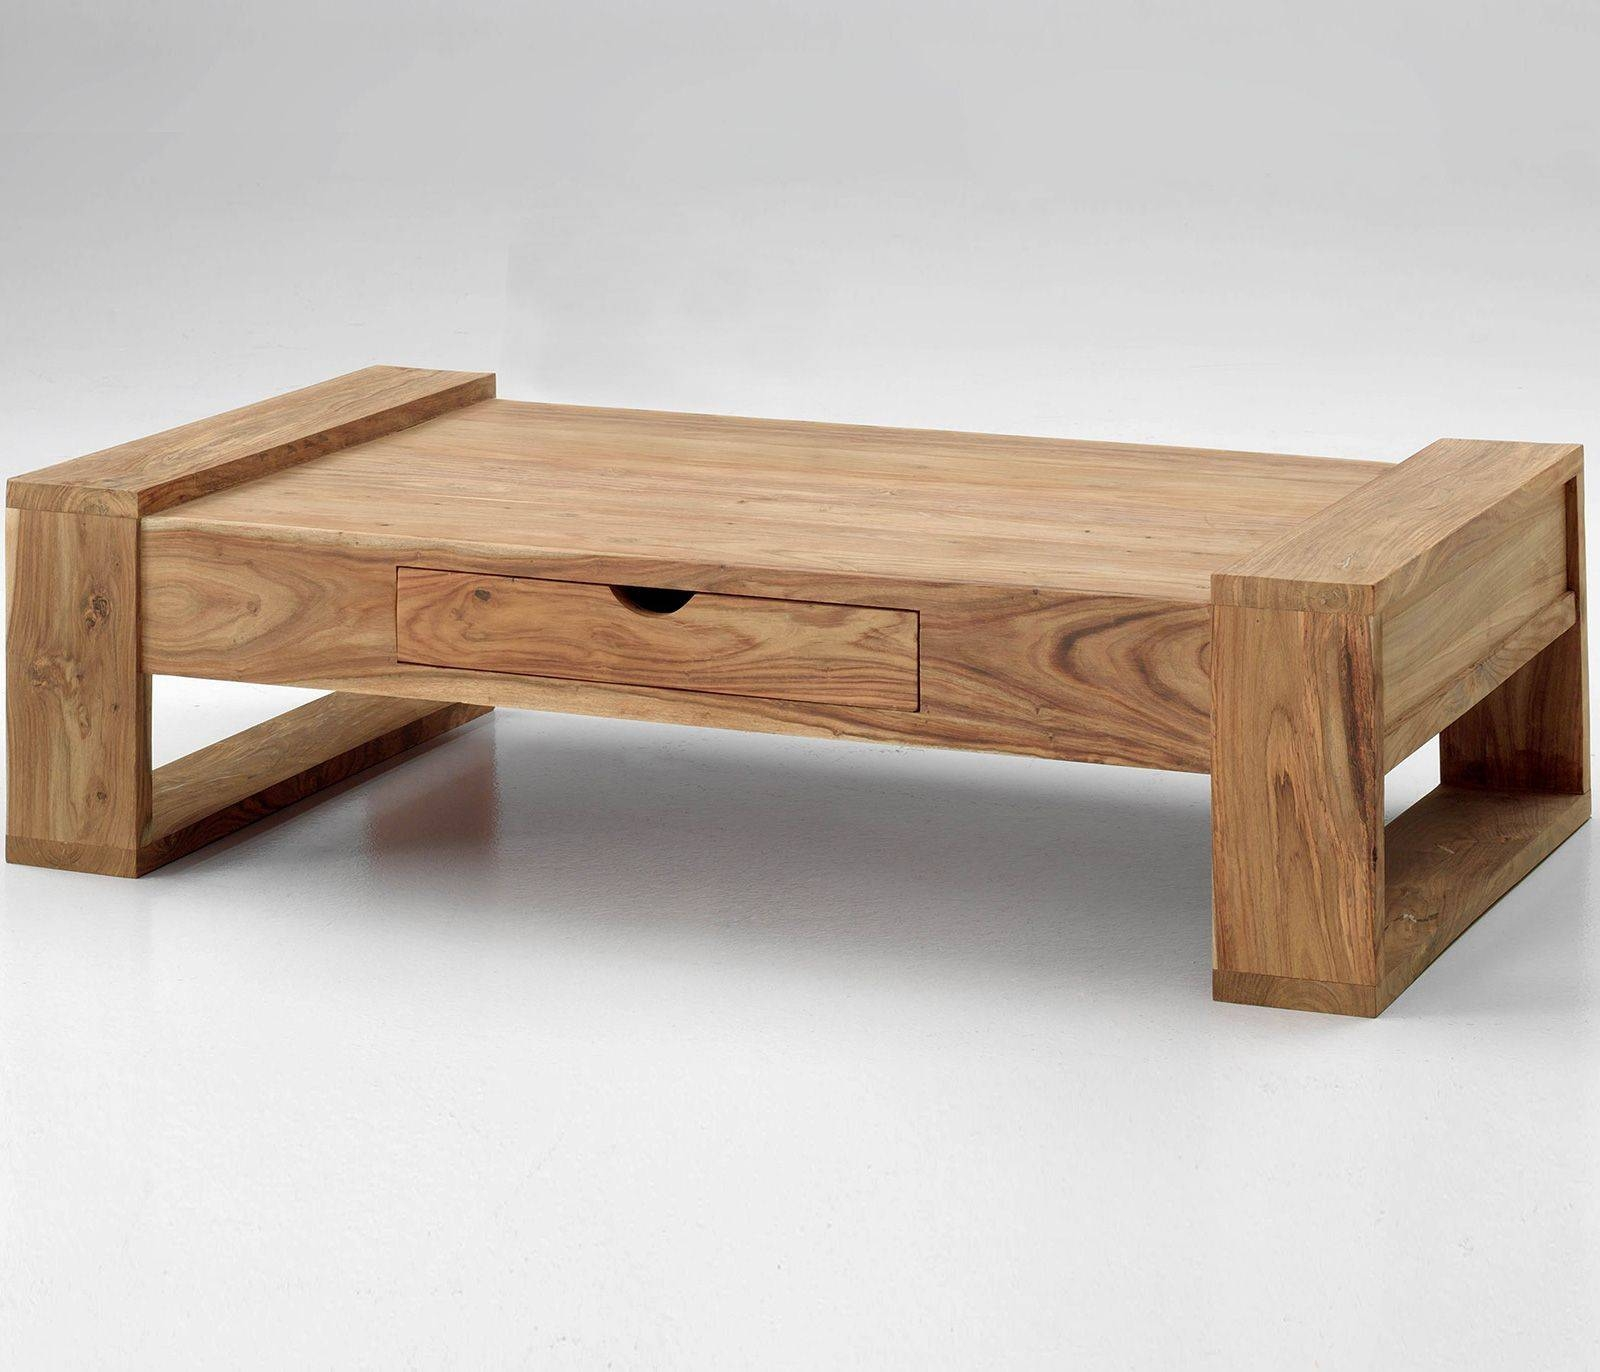 Coffee Tables: Outstanding Wood Coffee Tables Ideas Coffee Table regarding Low Coffee Table With Storage (Image 6 of 15)